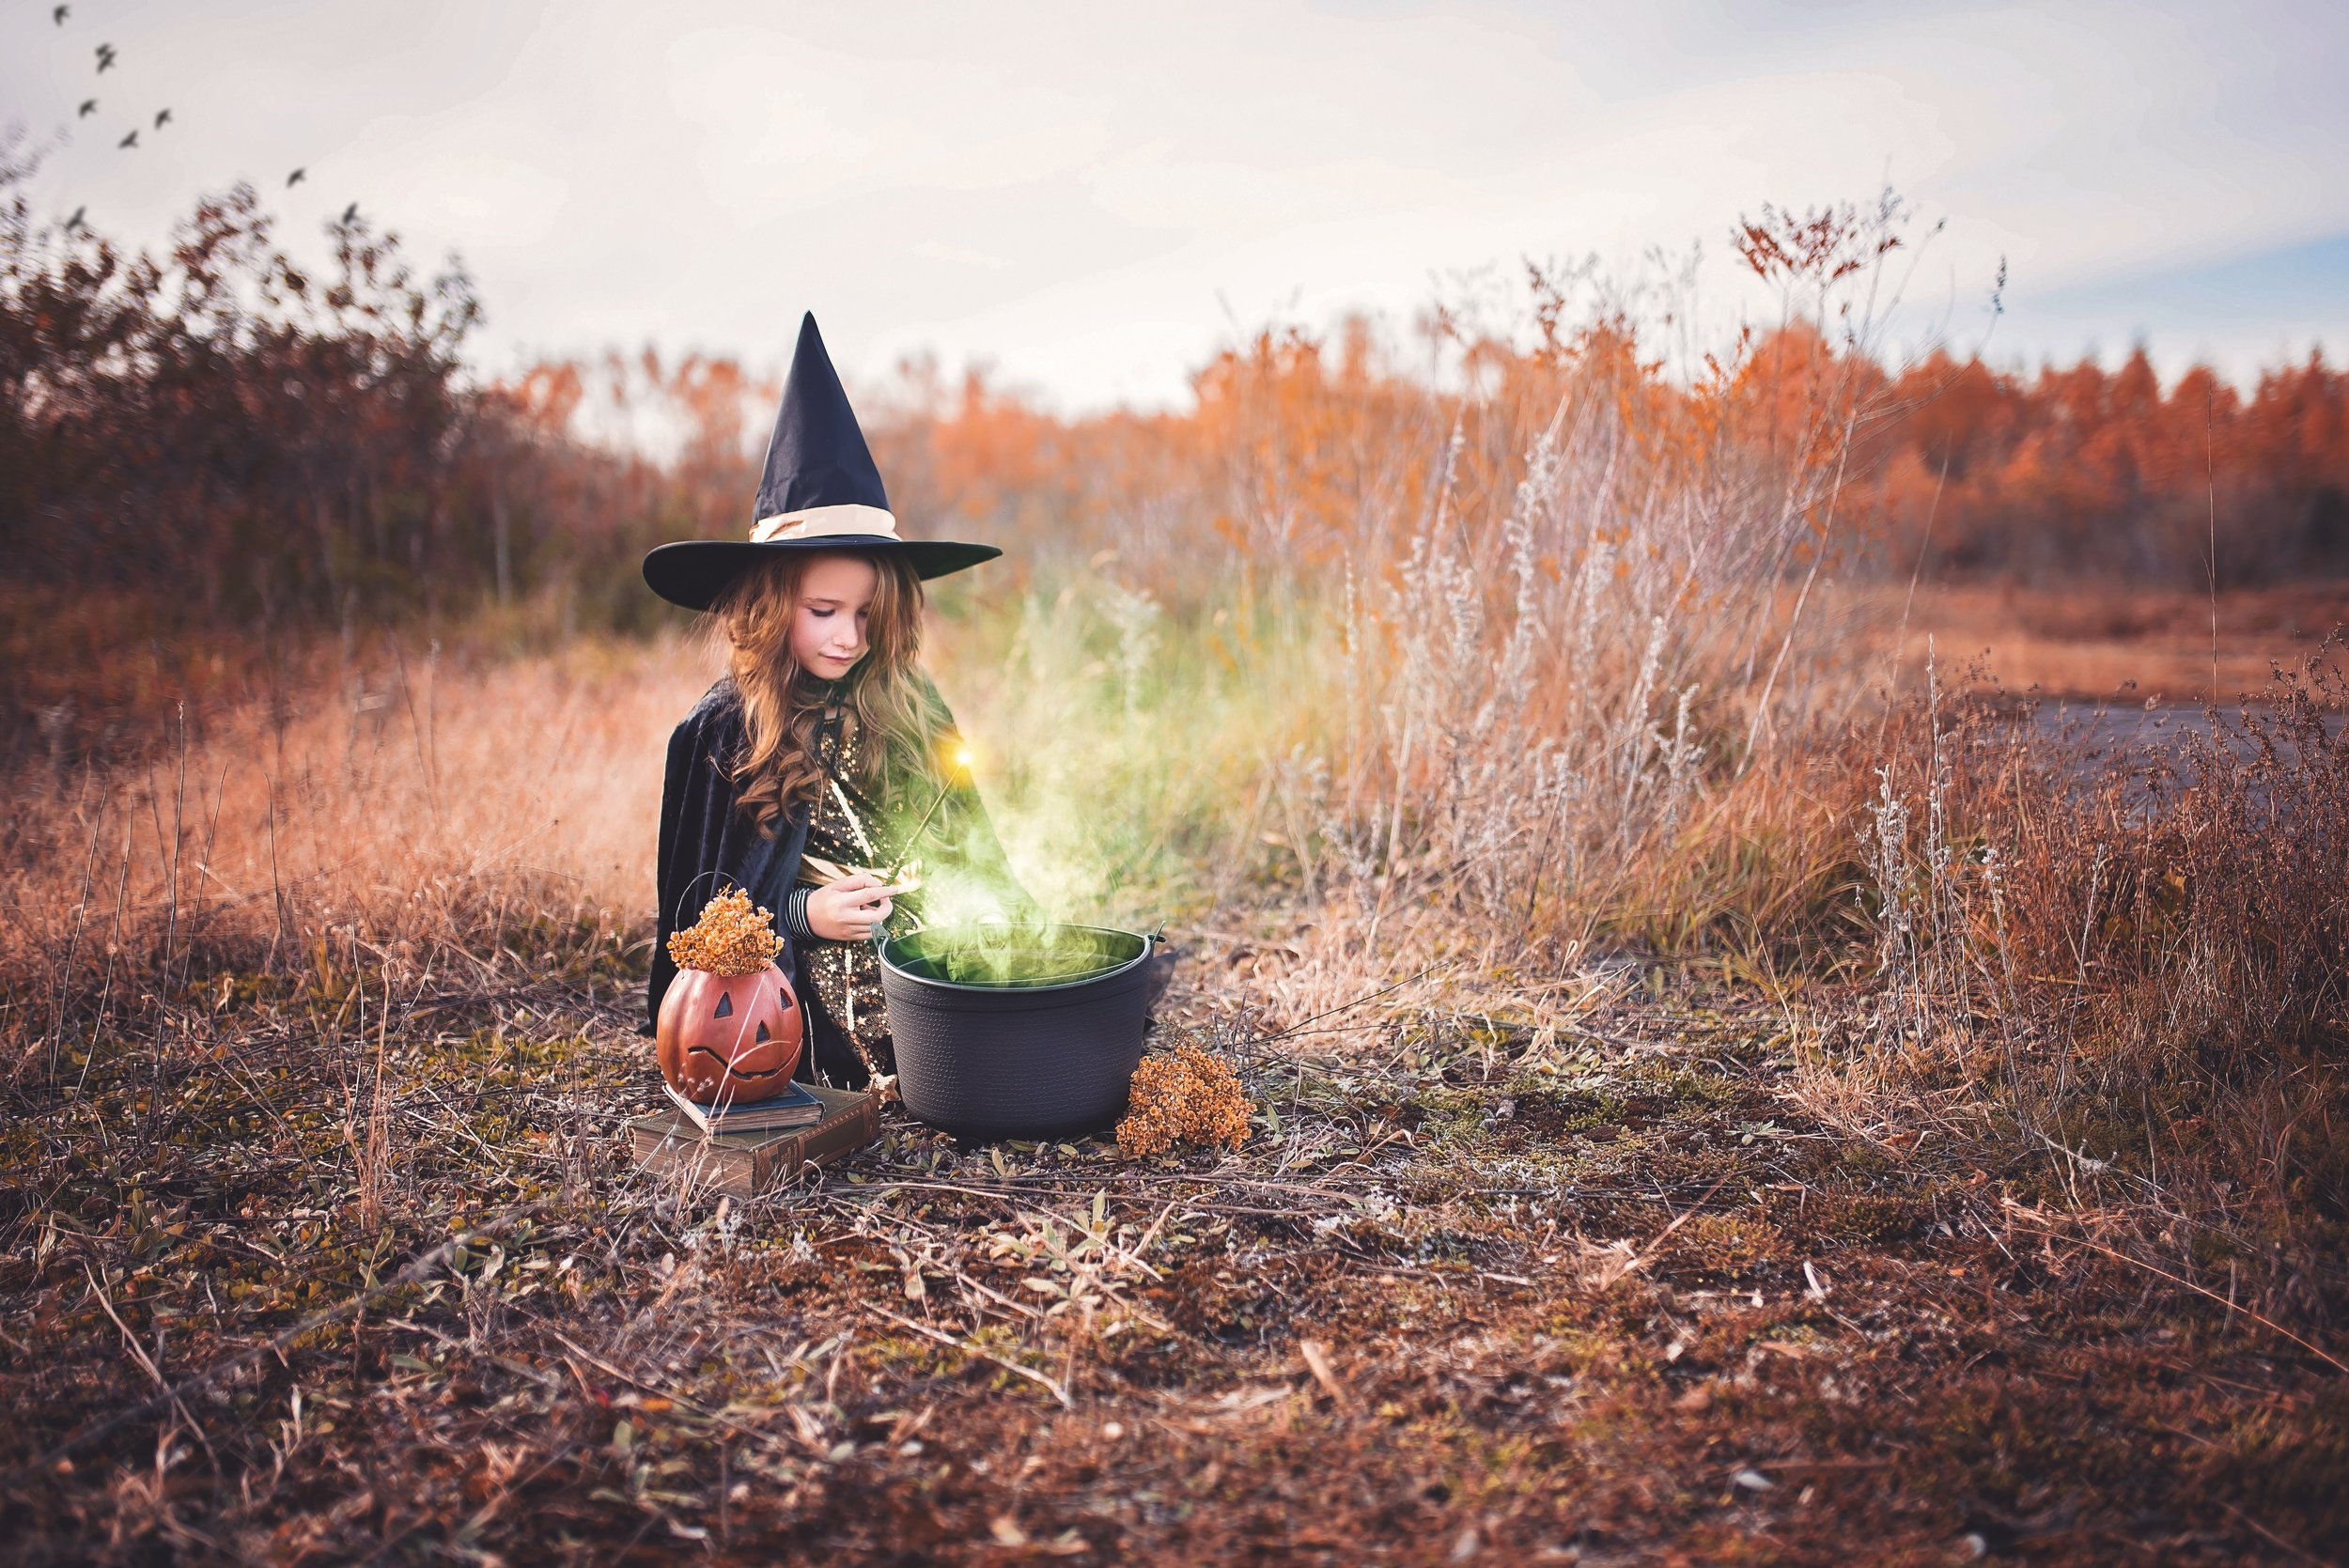 Teen Witch - COMING SOON!There is a special need for kids and teens to connect with their own magick. We will be hosting regular events specifically for kids/teens in 2019.